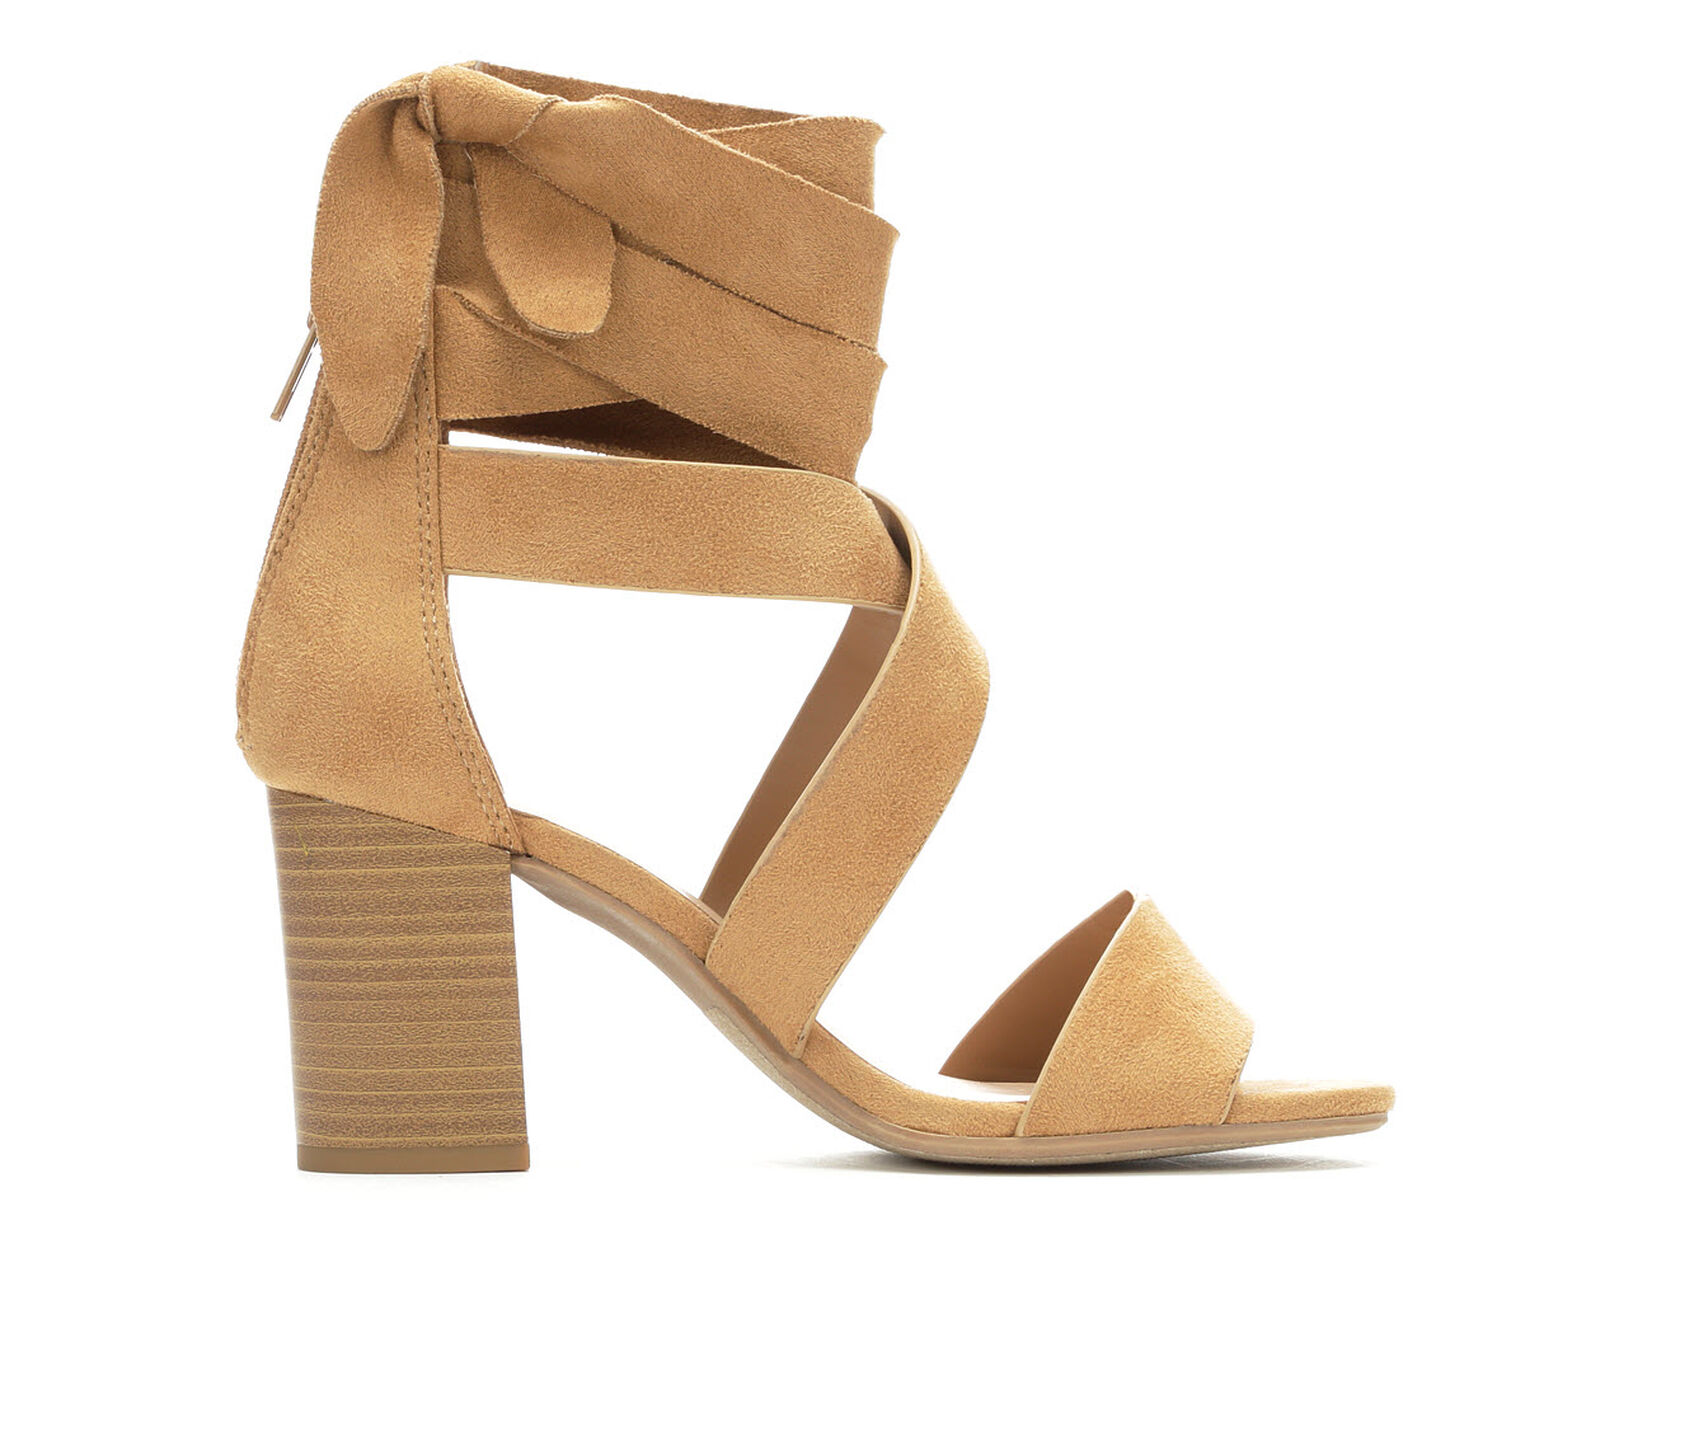 d9b5c843341 ... City Classified Ladies Lace-Up Strappy Heeled Sandals. Previous